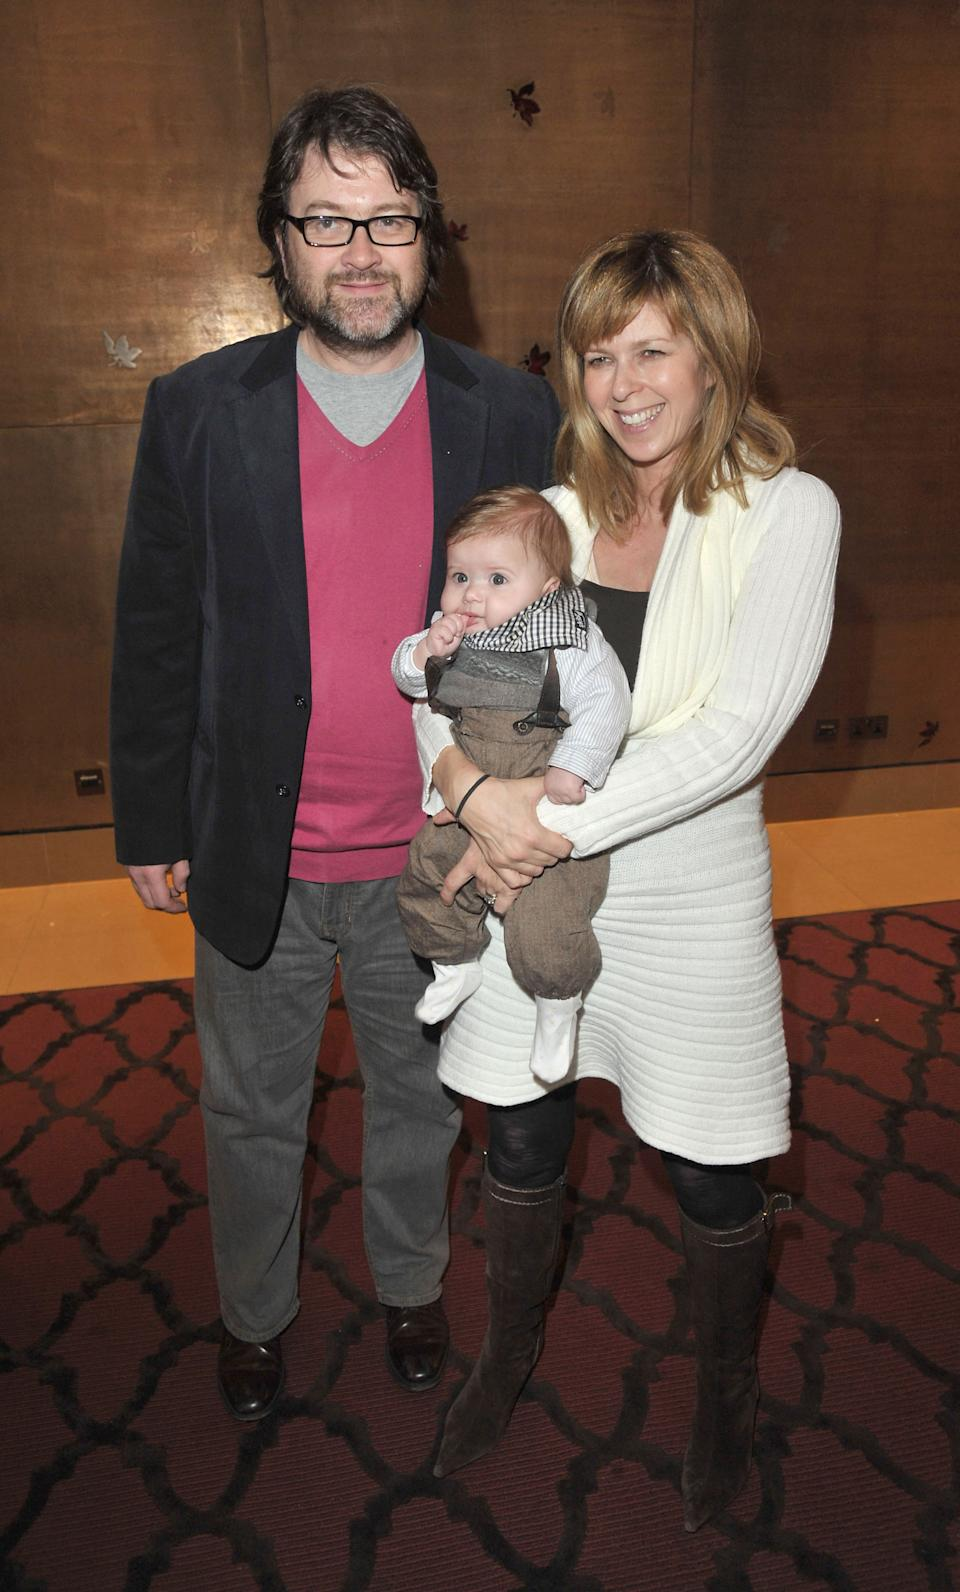 LONDON, UNITED KINGDOM - JANUARY 24: Kate Garraway, her husband Derek Draper and their son Billy attends The Princess And The Frog special event at The Mayfair Hotel on January 24, 2010 in London, England. (Photo by Jon Furniss/WireImage)